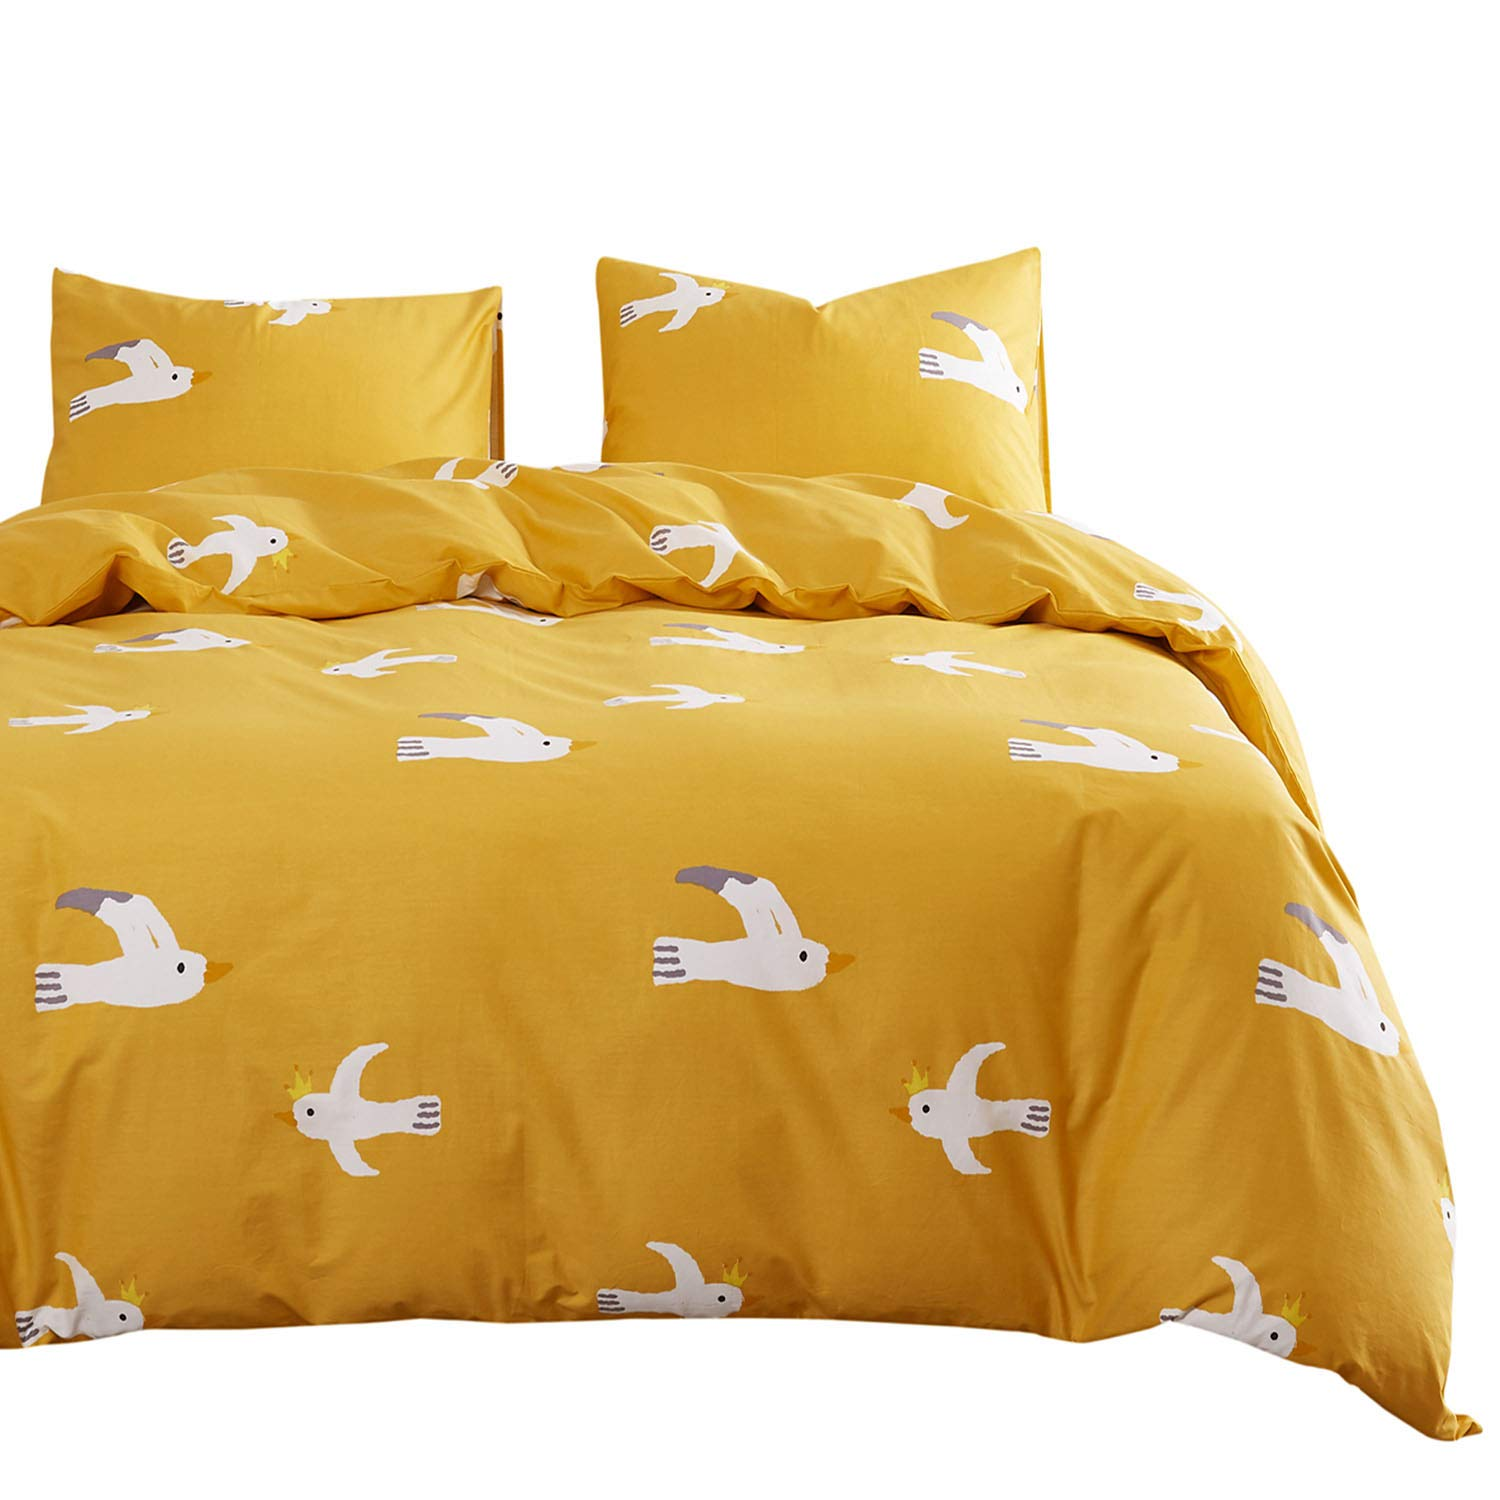 Wake In Cloud - Birds Comforter Set, White Birds Pattern Printed on Yellow,100% Cotton Fabric with Soft Microfiber Inner Fill Bedding (3pcs, Queen Size)